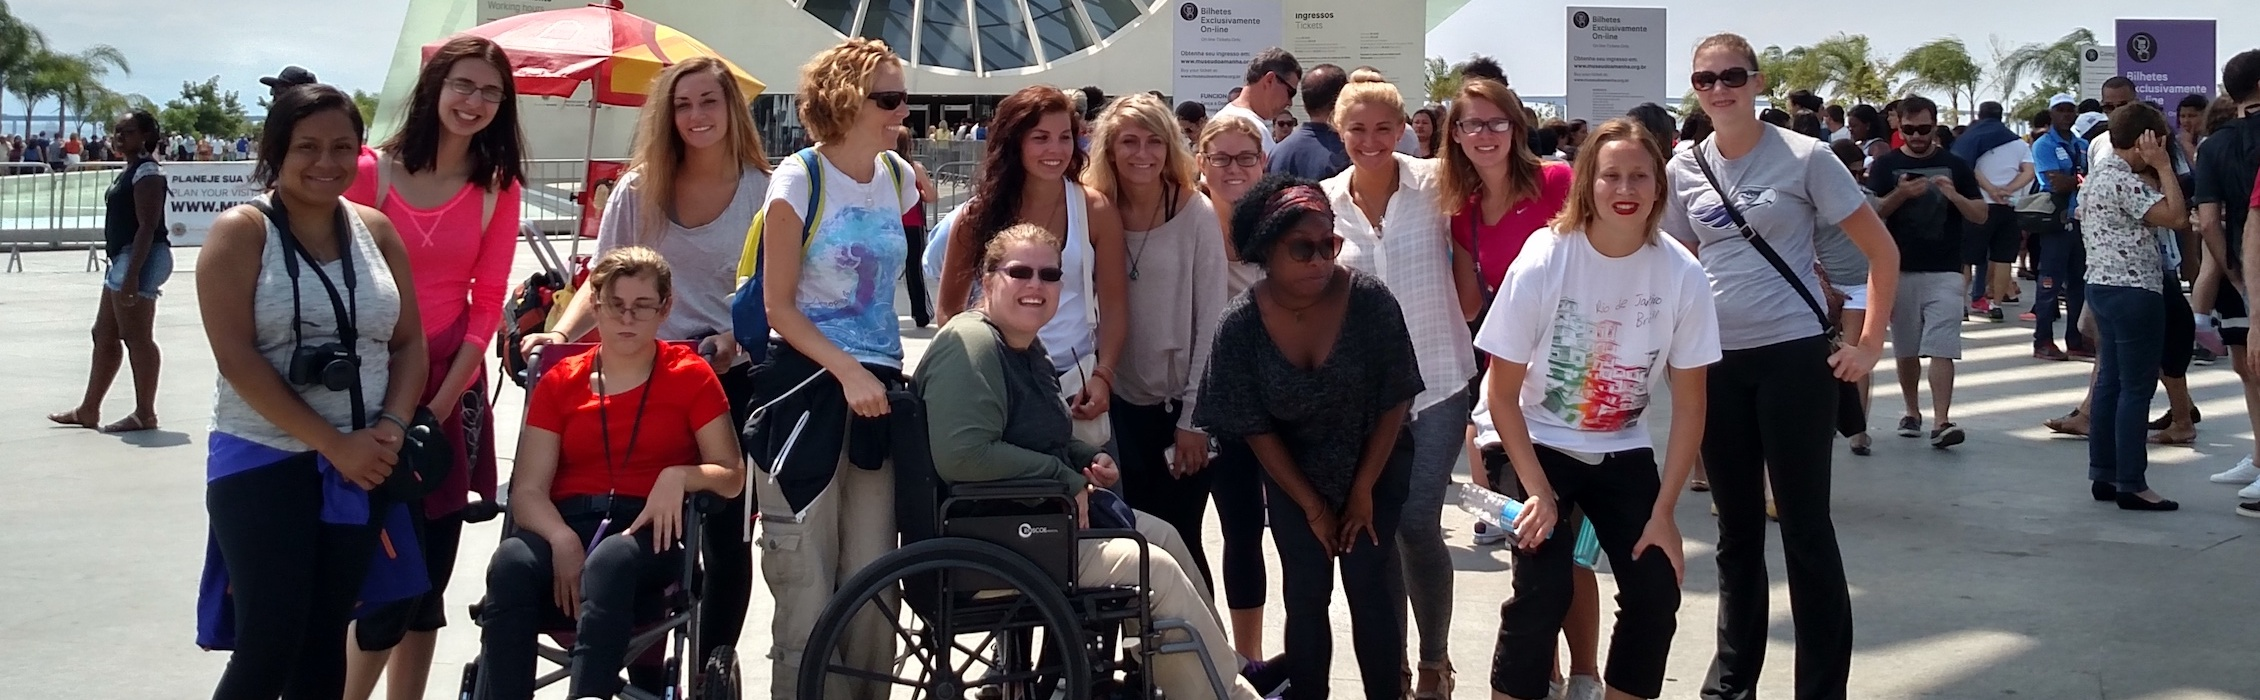 Image: Groups of traveling student of all abilities posing for a photo